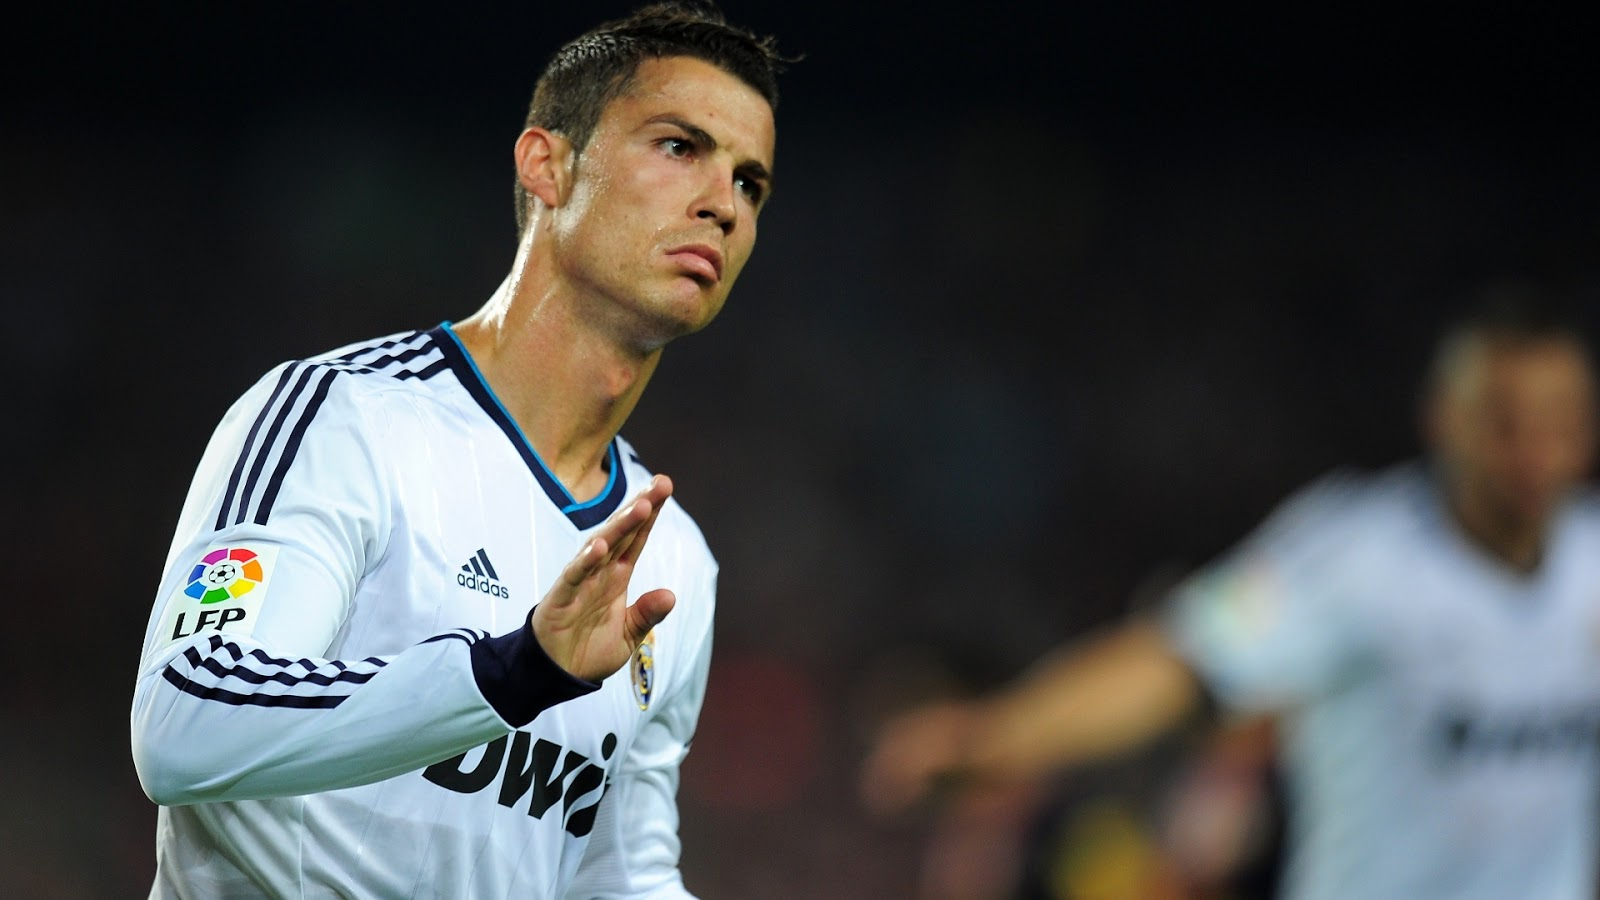 video gol real madridmanchester united 11 ronaldo